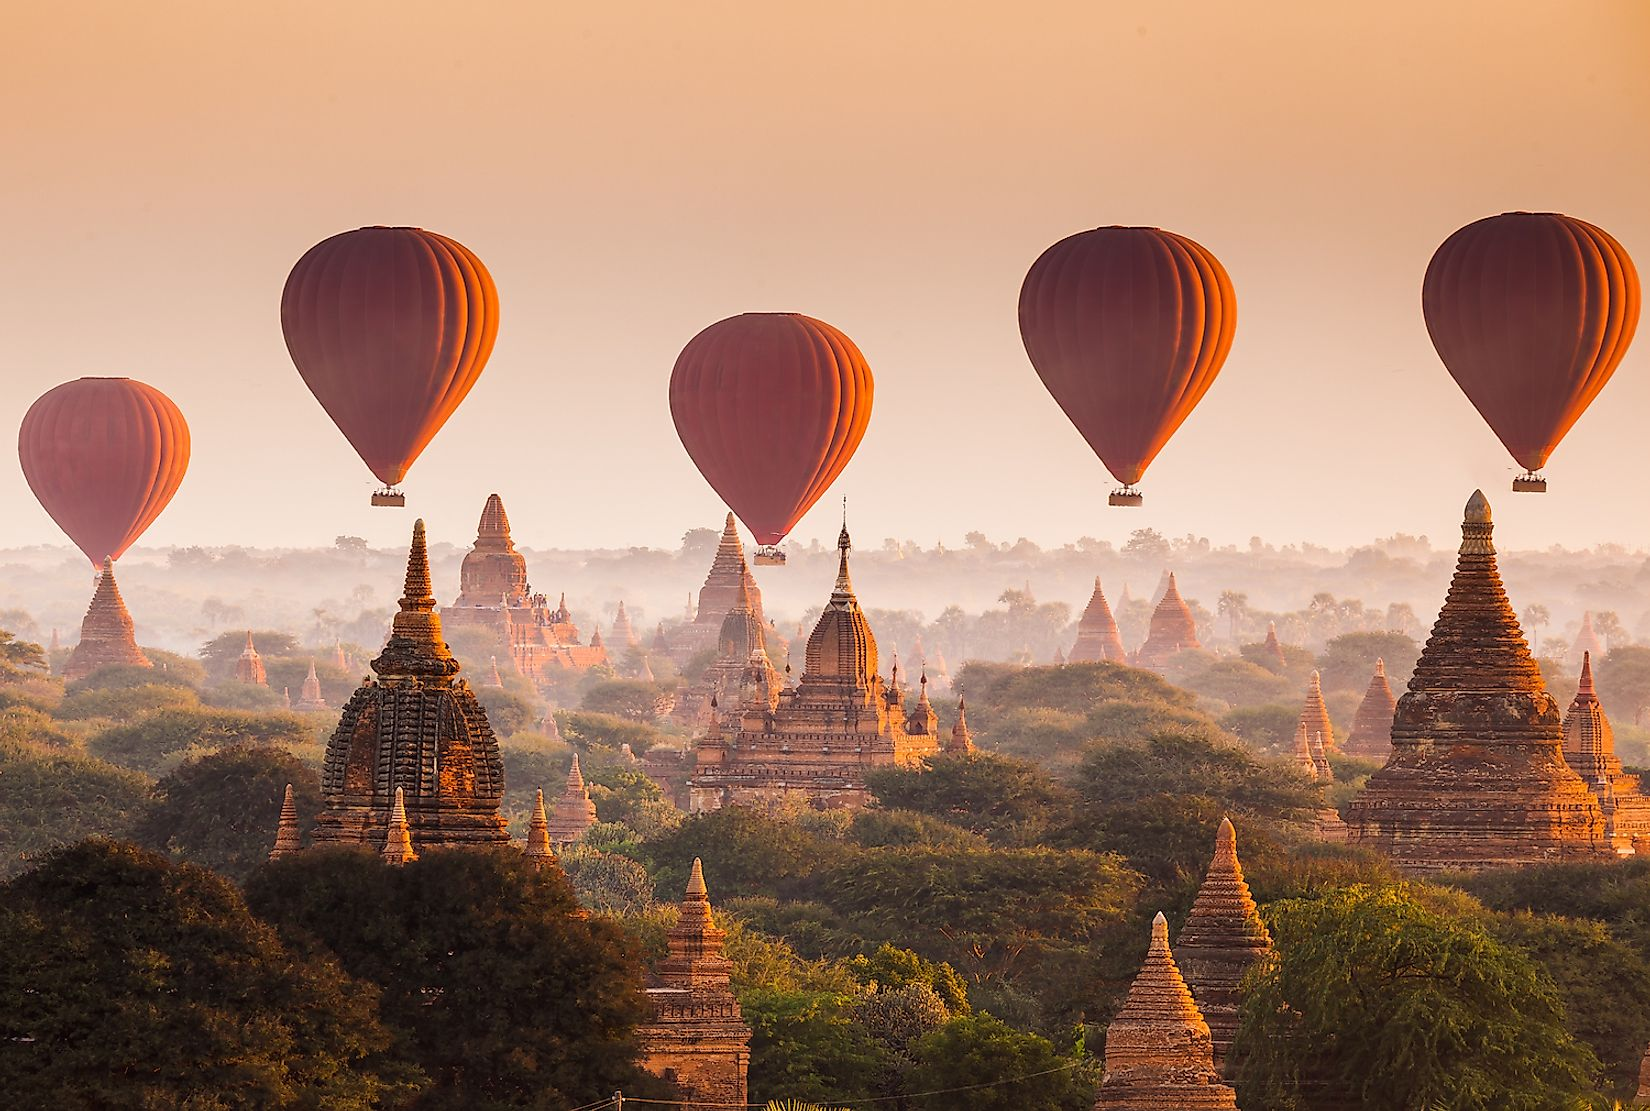 Hot air balloons over the plain of Bagan in Myanmar. Image credit: lkunl/Shutterstock.com